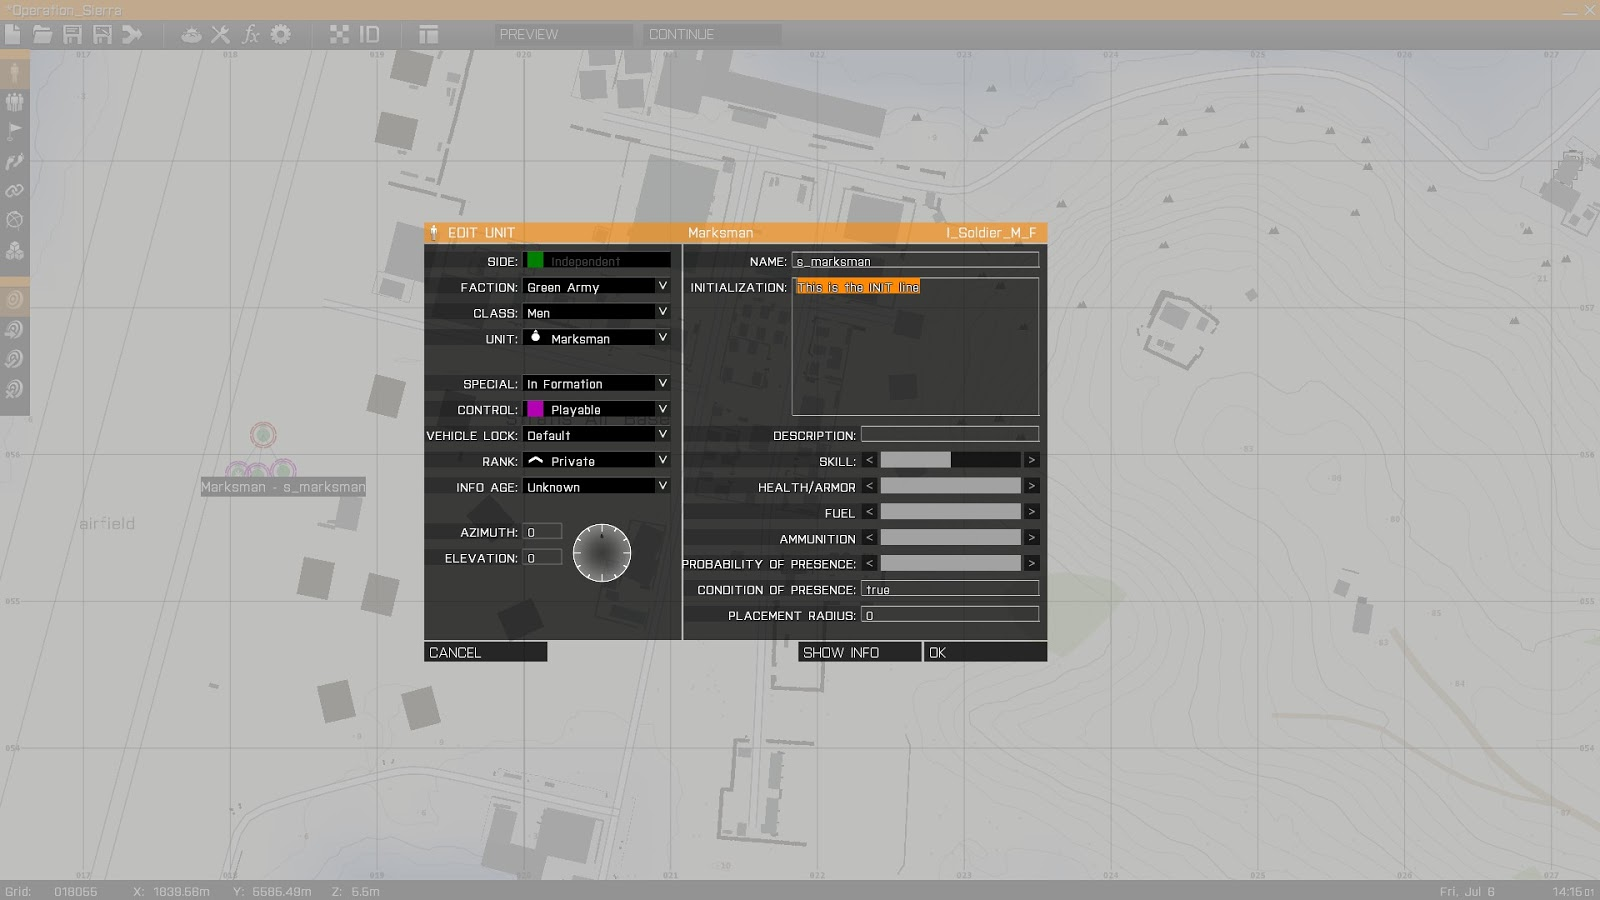 ArmA 3 Scripting Tutorials: Add Clothing and Gear to Your